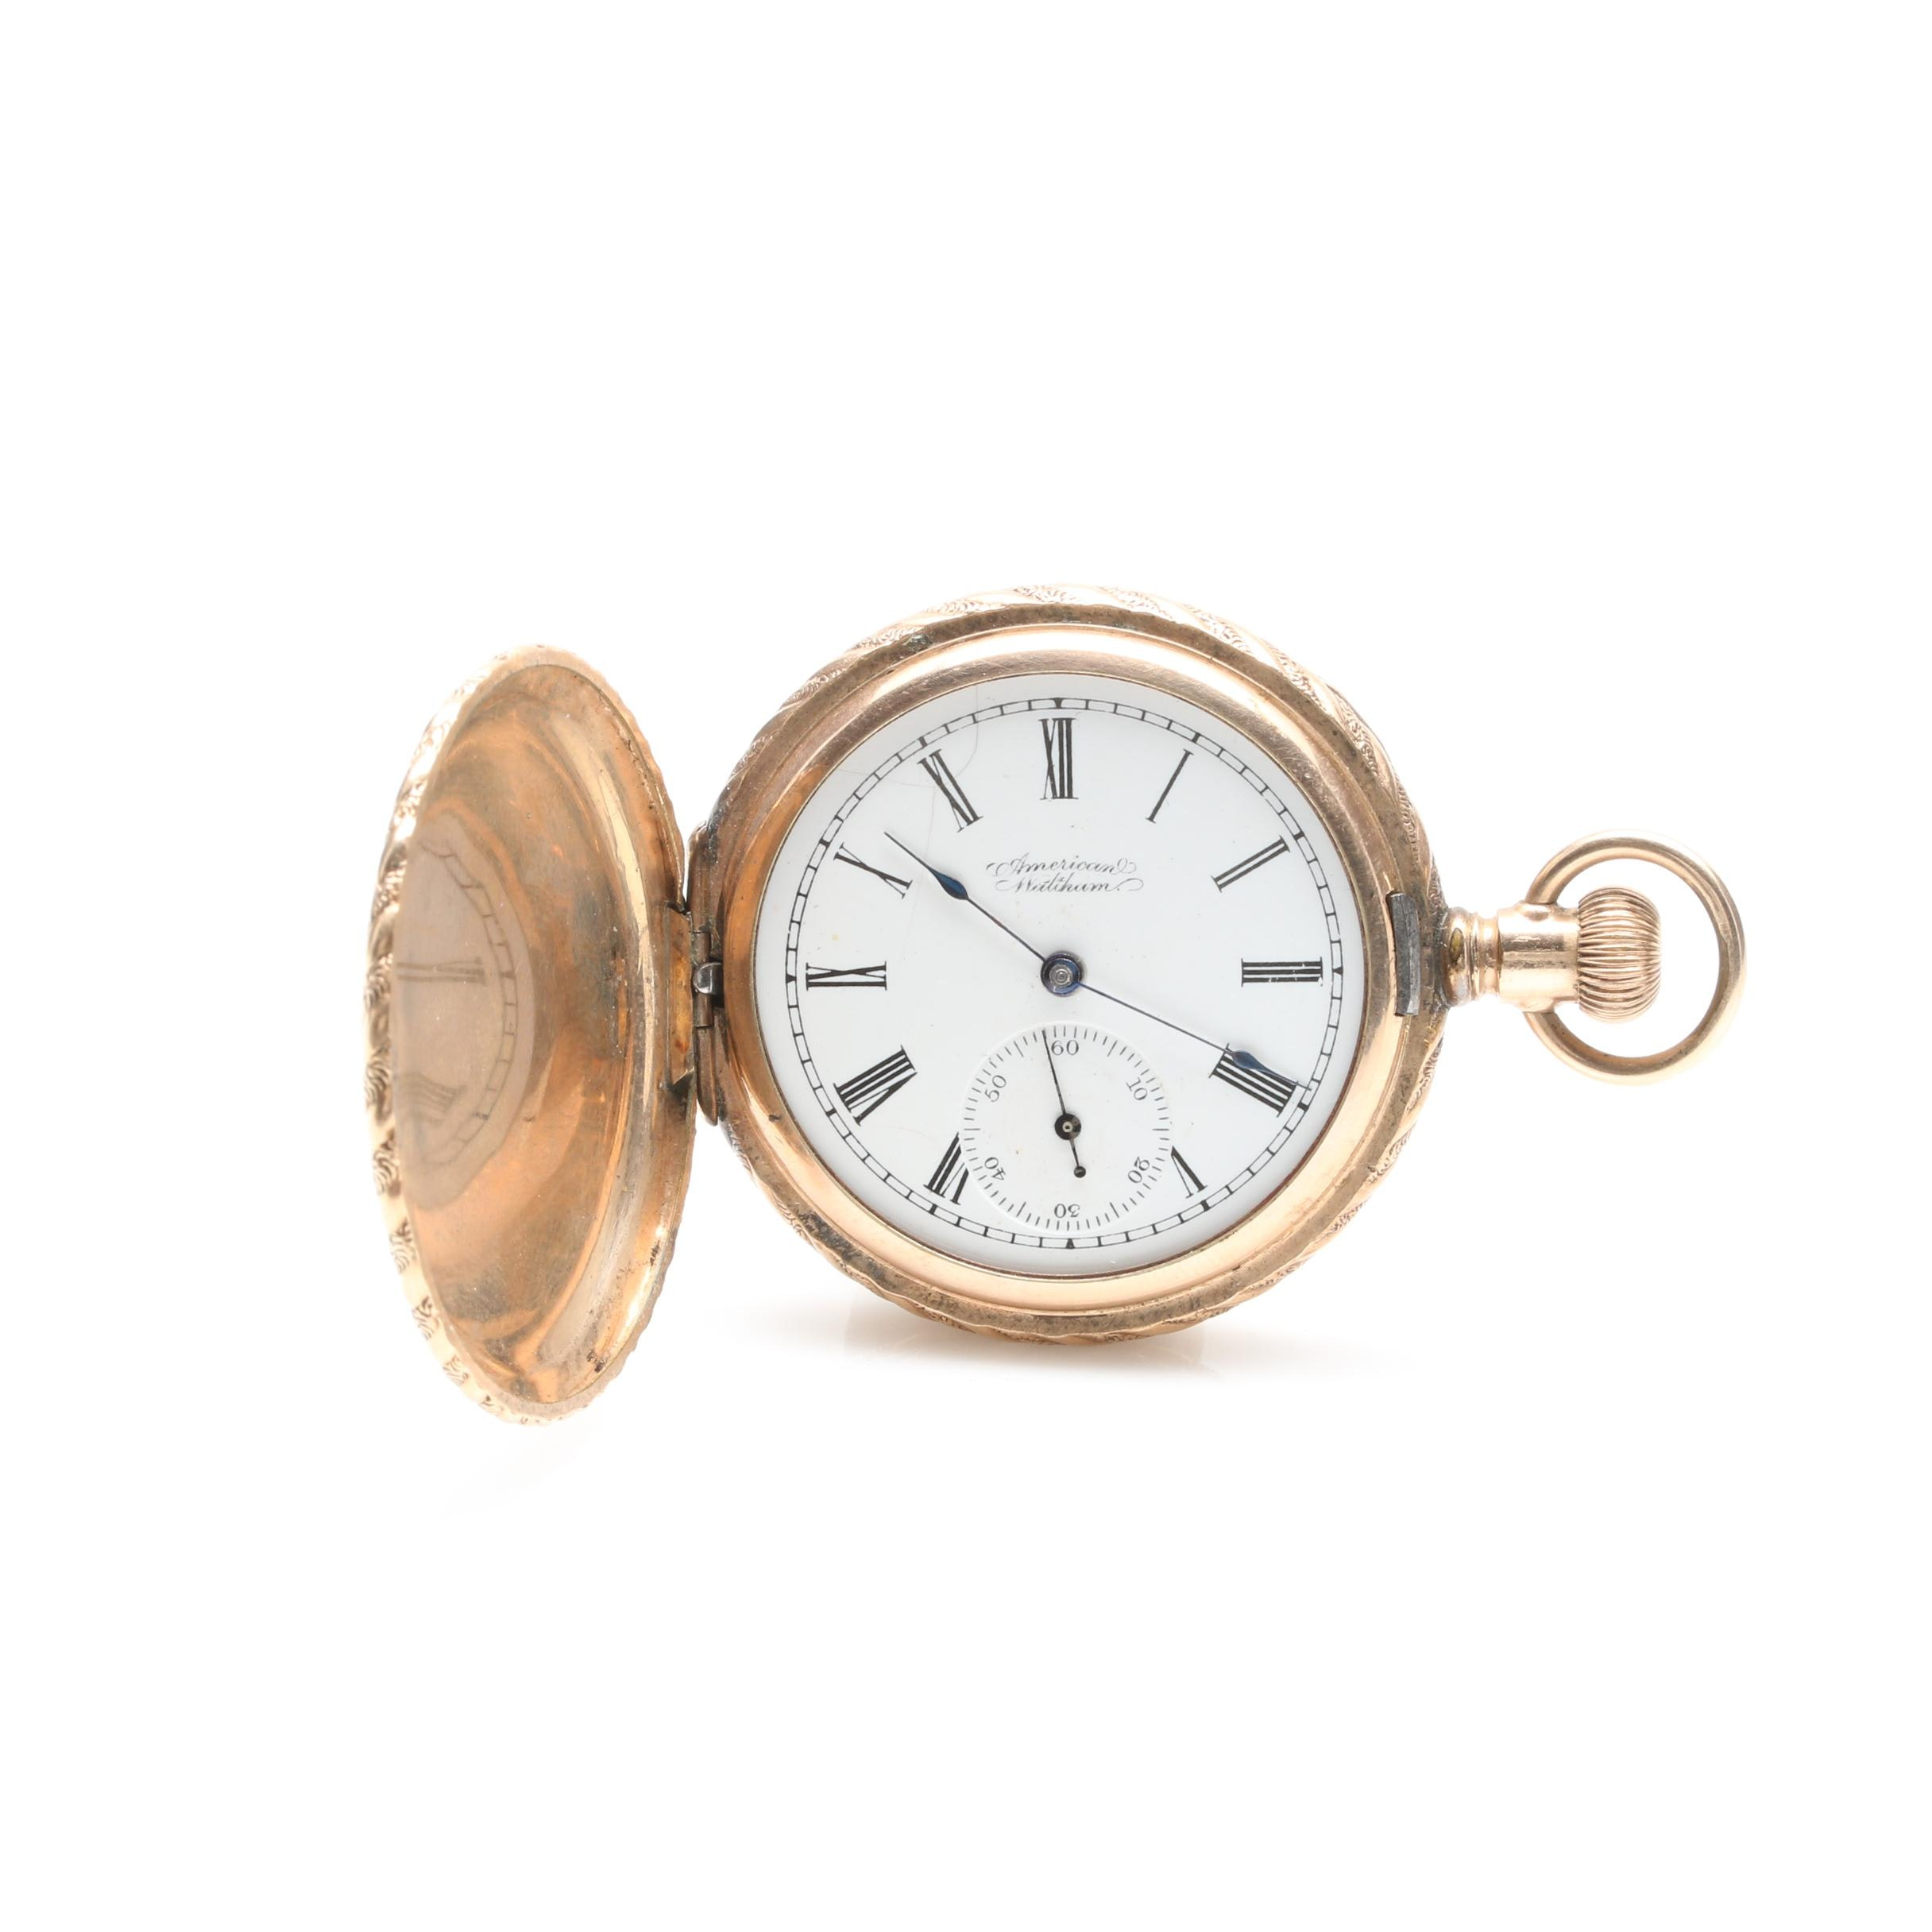 Antique American Waltham Gold Filled Hunting Case Pocket Watch